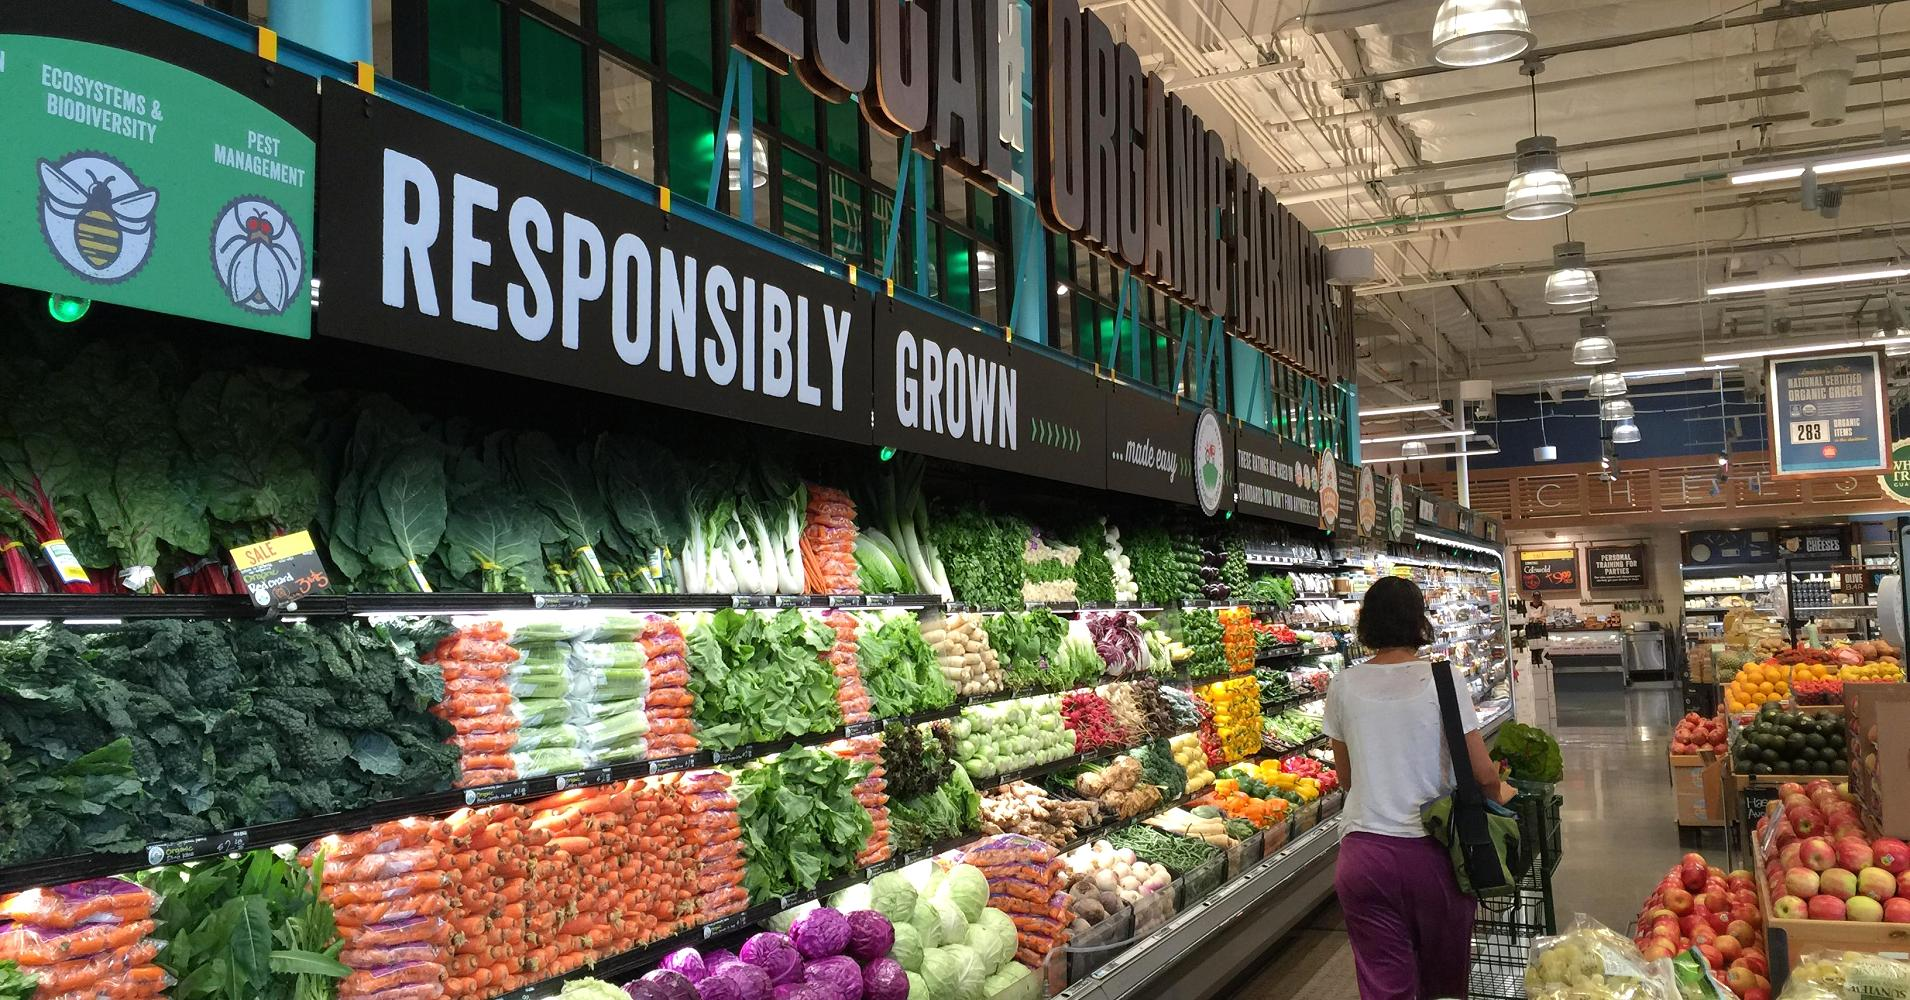 whole foods essay 3 will whole foods market survive into the 10-15 years analysis general environment global we will write a custom essay sample on whole foods market specifically for you for only $1638.